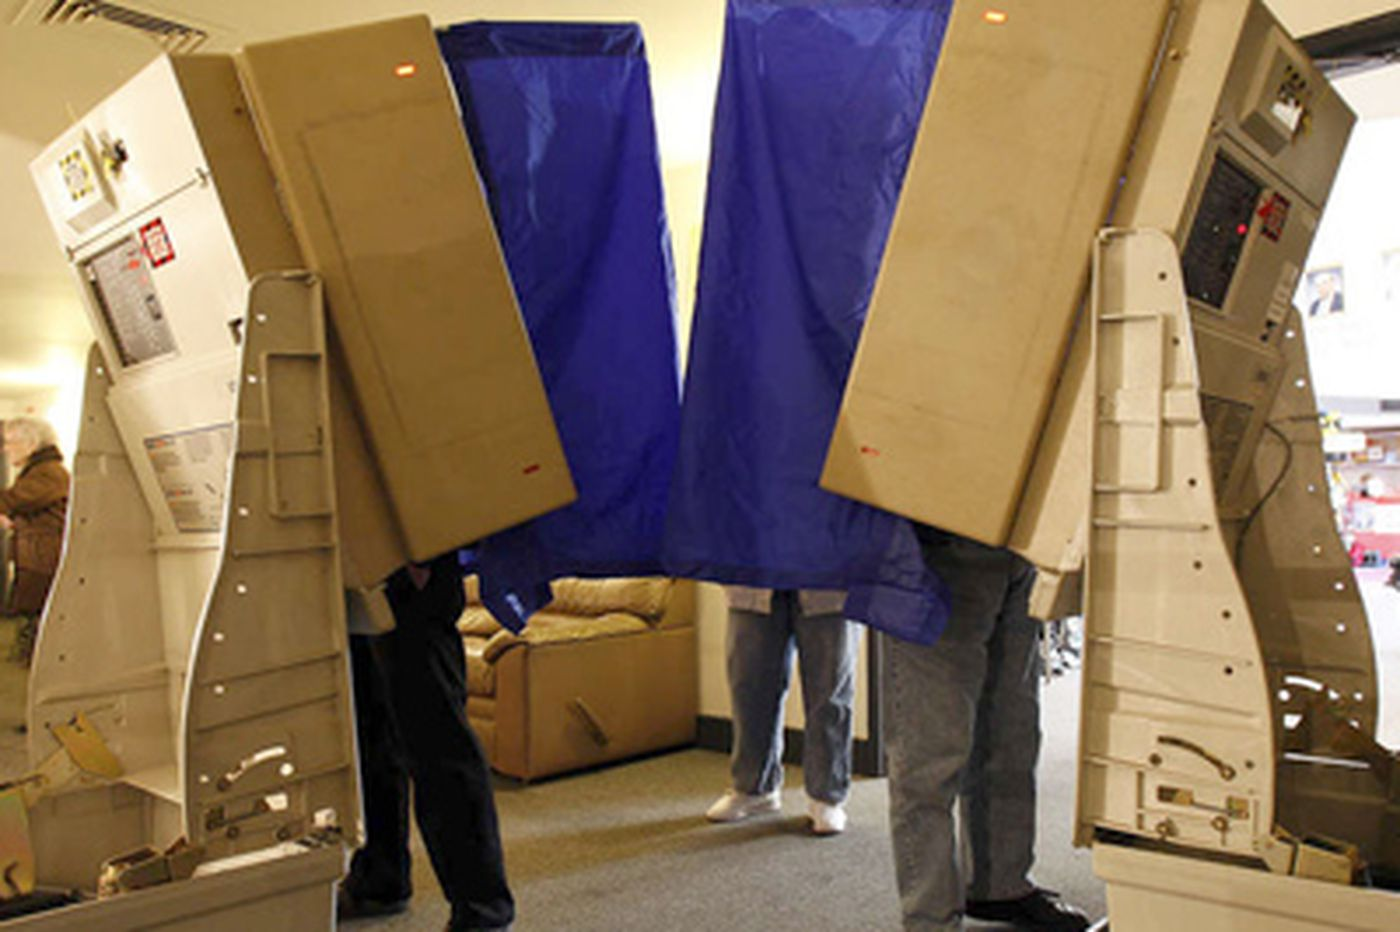 DN Editorial: Voter-ID bill paints ugly picture of democracy